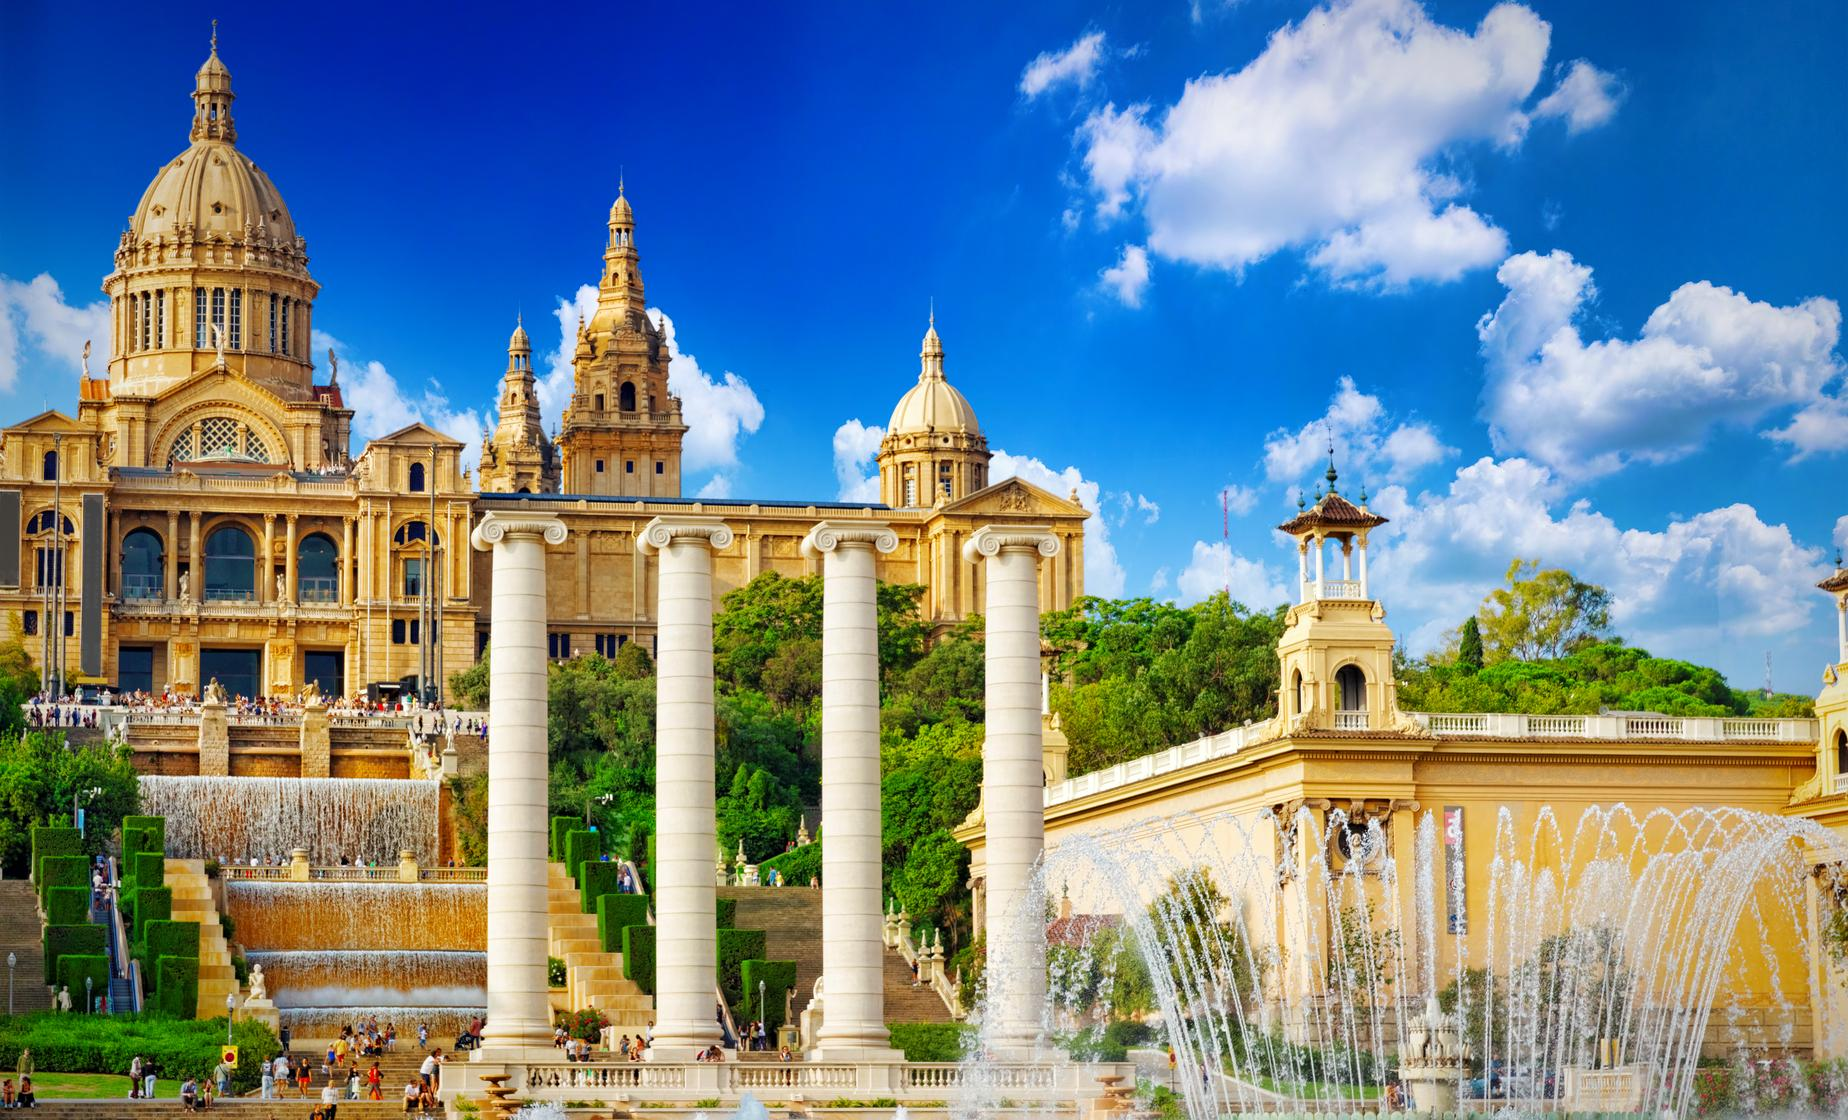 The Best of Barcelona Art Tour (Museu Nacional d'Art de Catalunya)